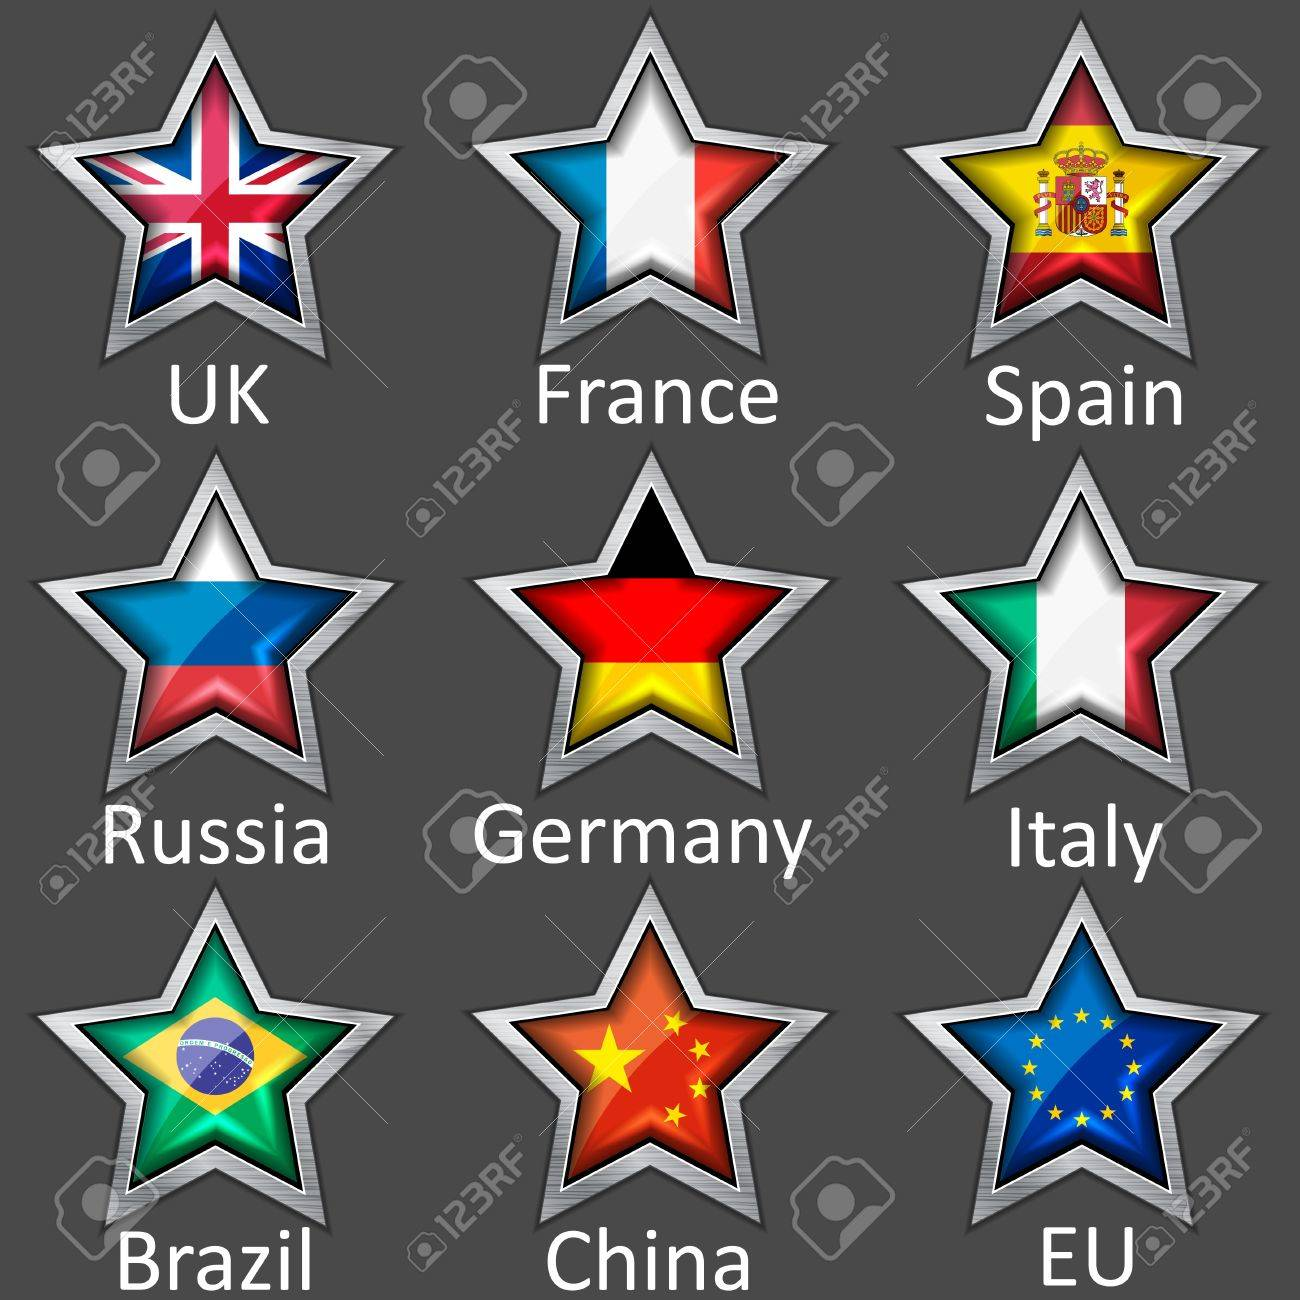 stars with flags icon Stock Vector - 13799780